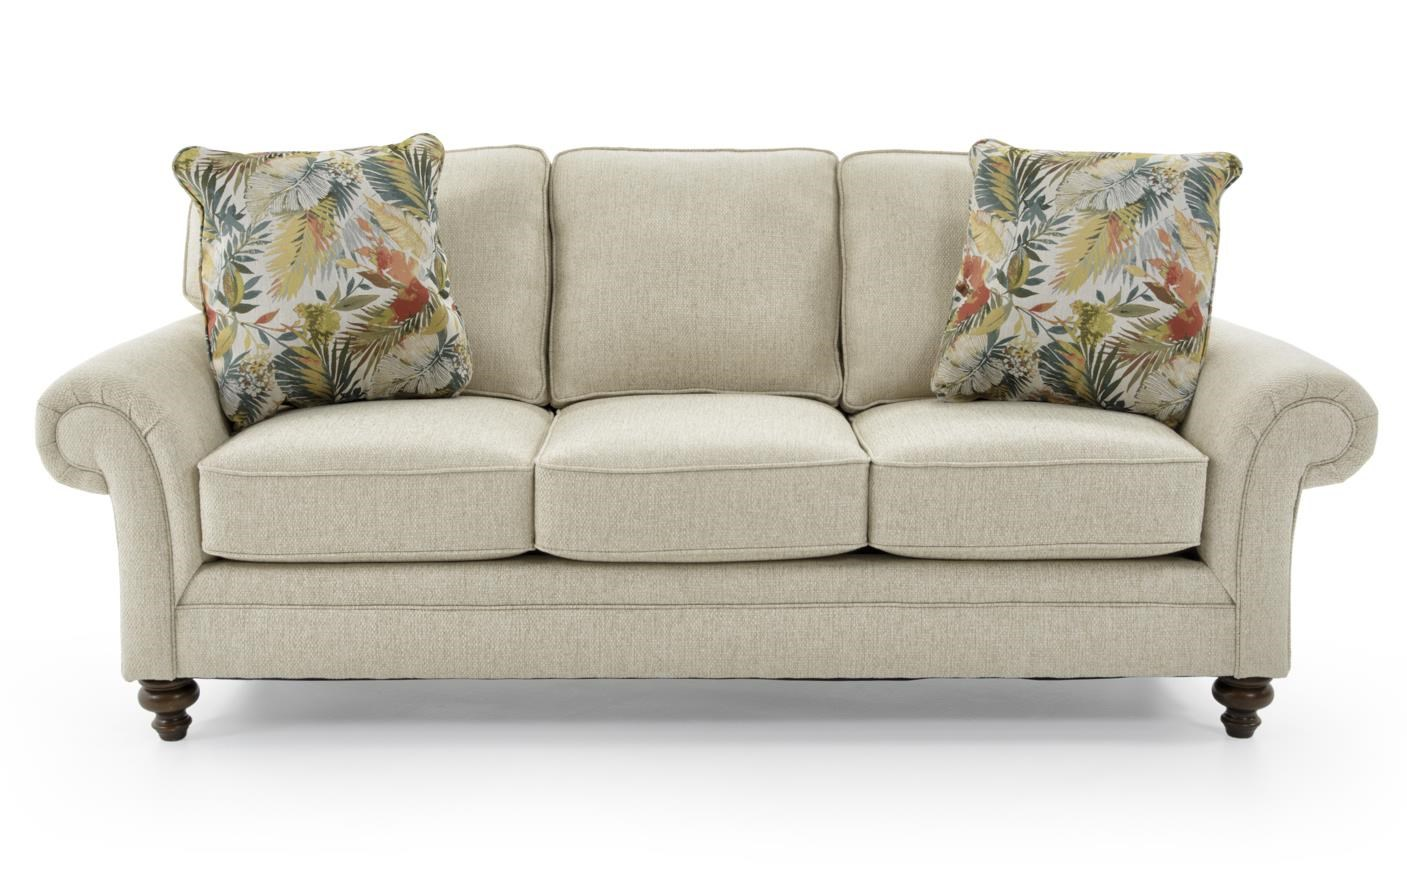 Broyhill Furniture Larissa 6112 3 4666 92 Upholstered